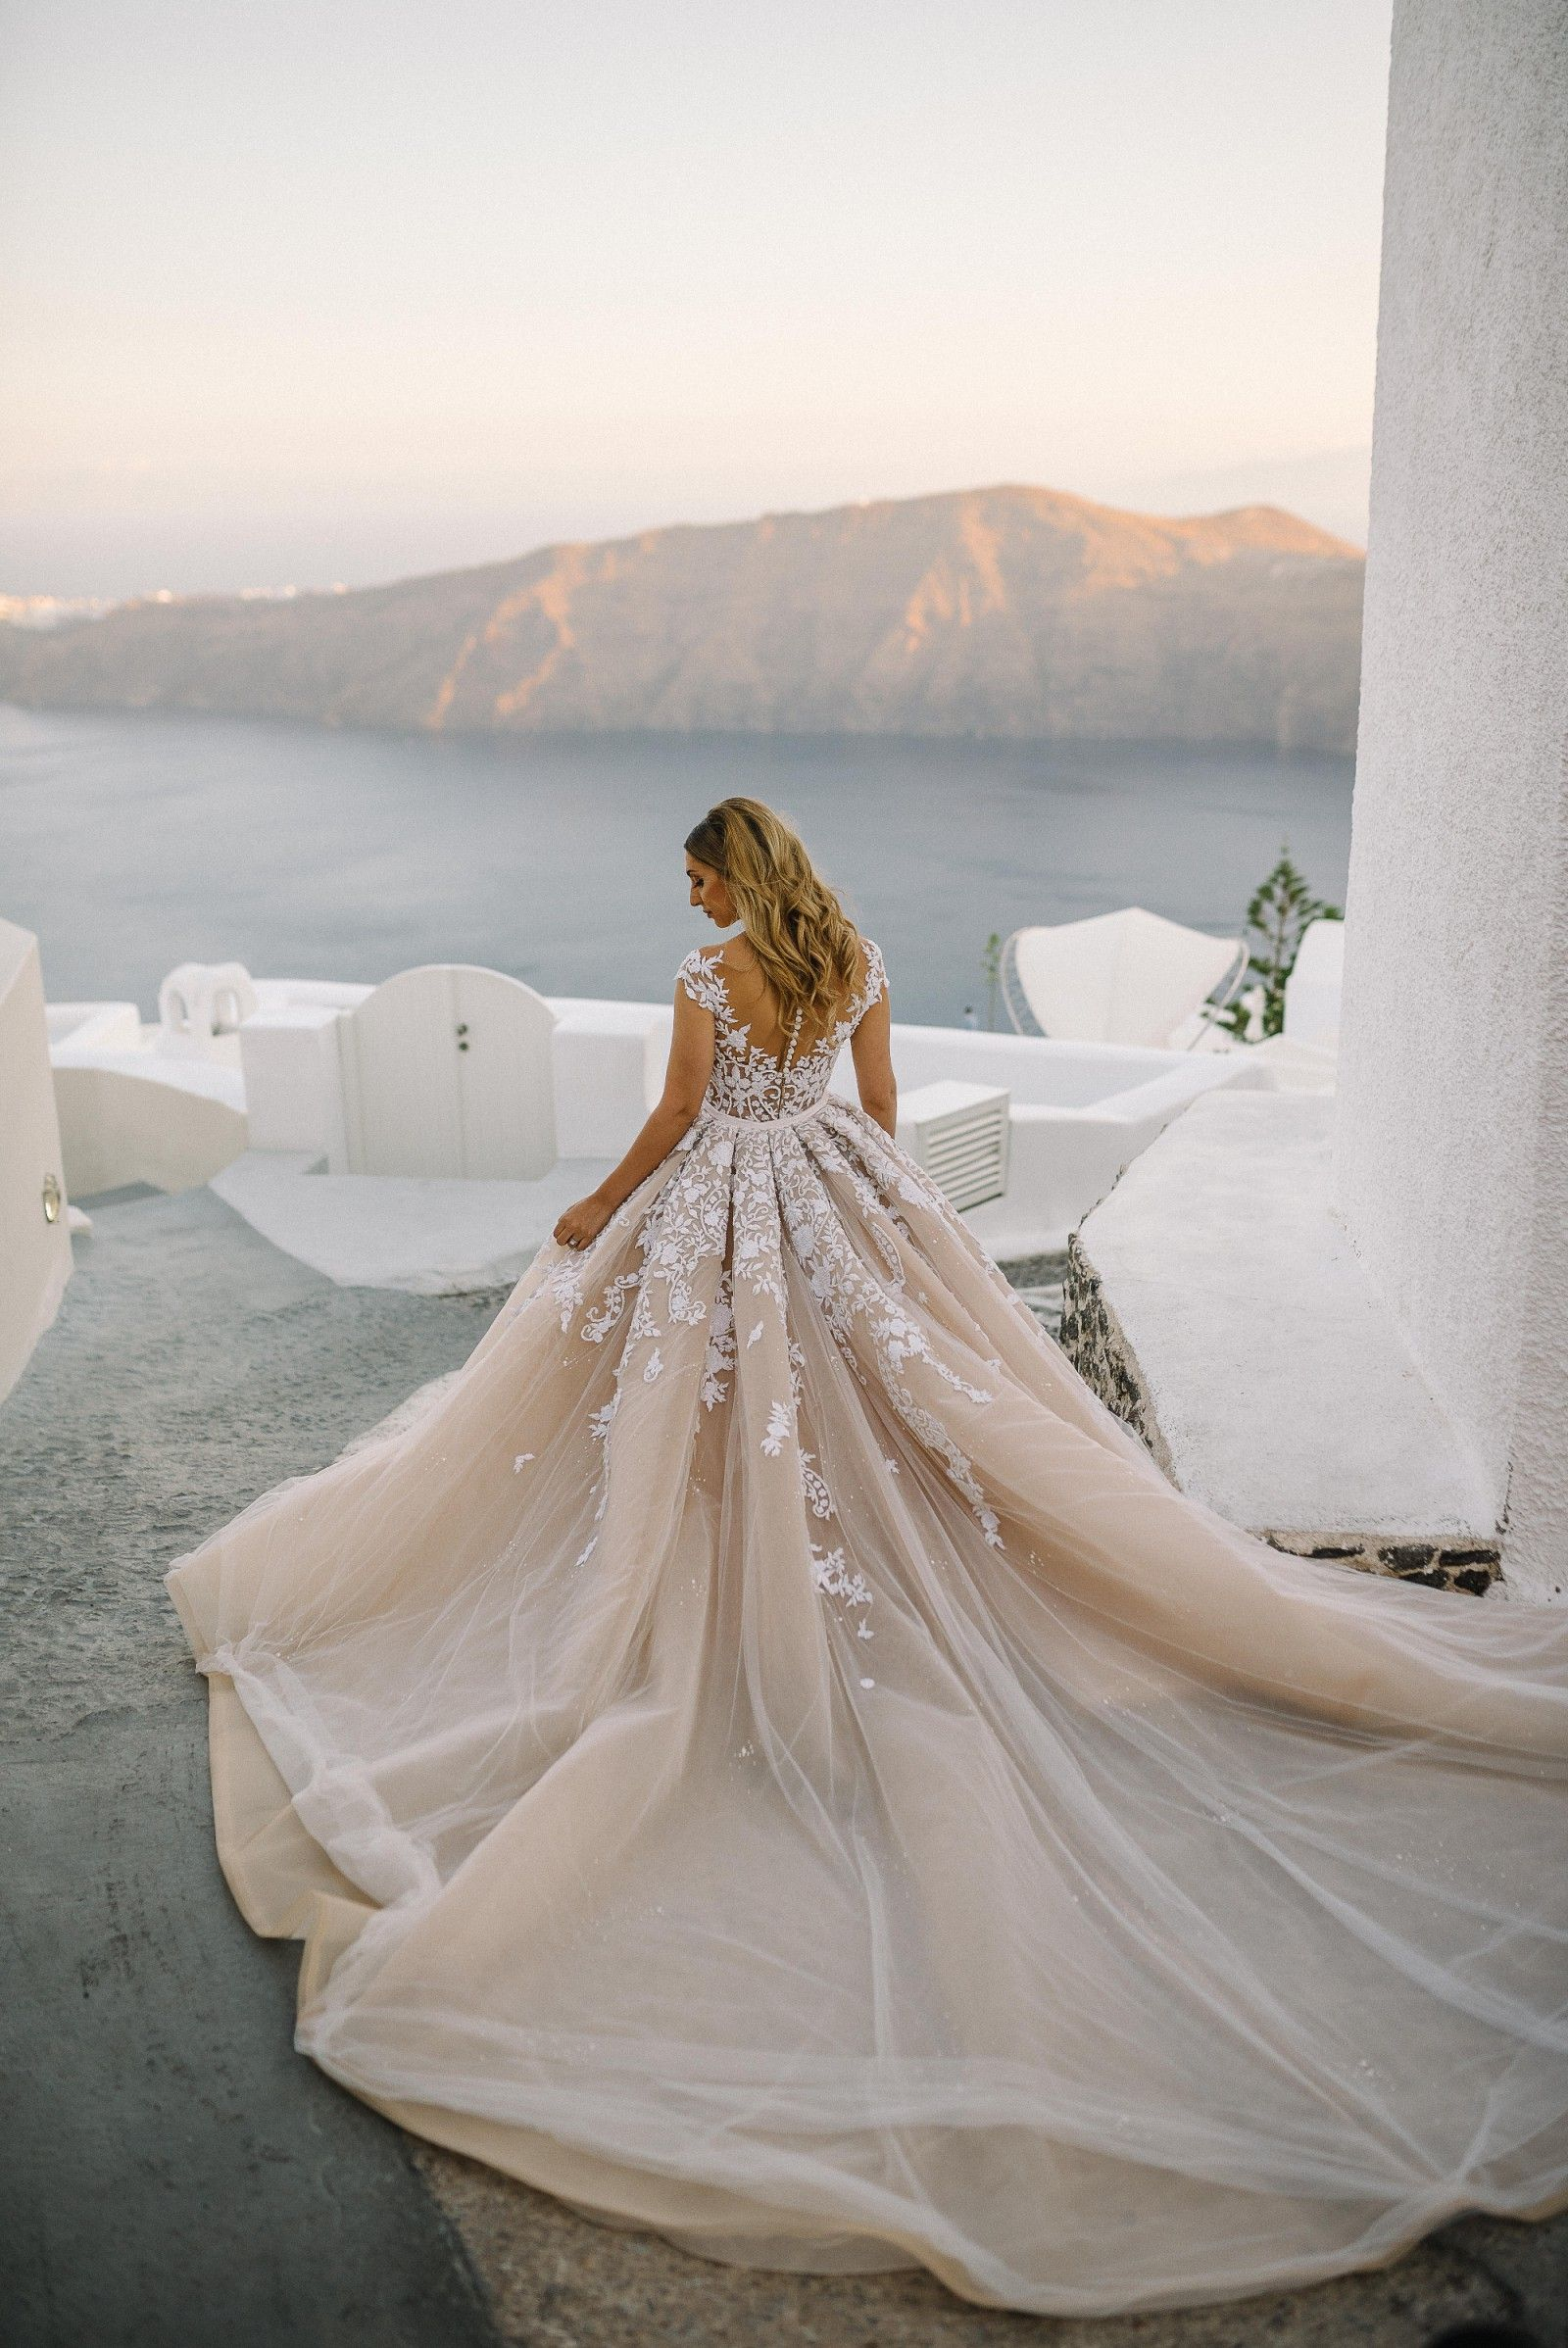 Find Your Dream Dress On The World's Largest Wedding Marketplace Or Sell: Selling Your Wedding Dress At Reisefeber.org